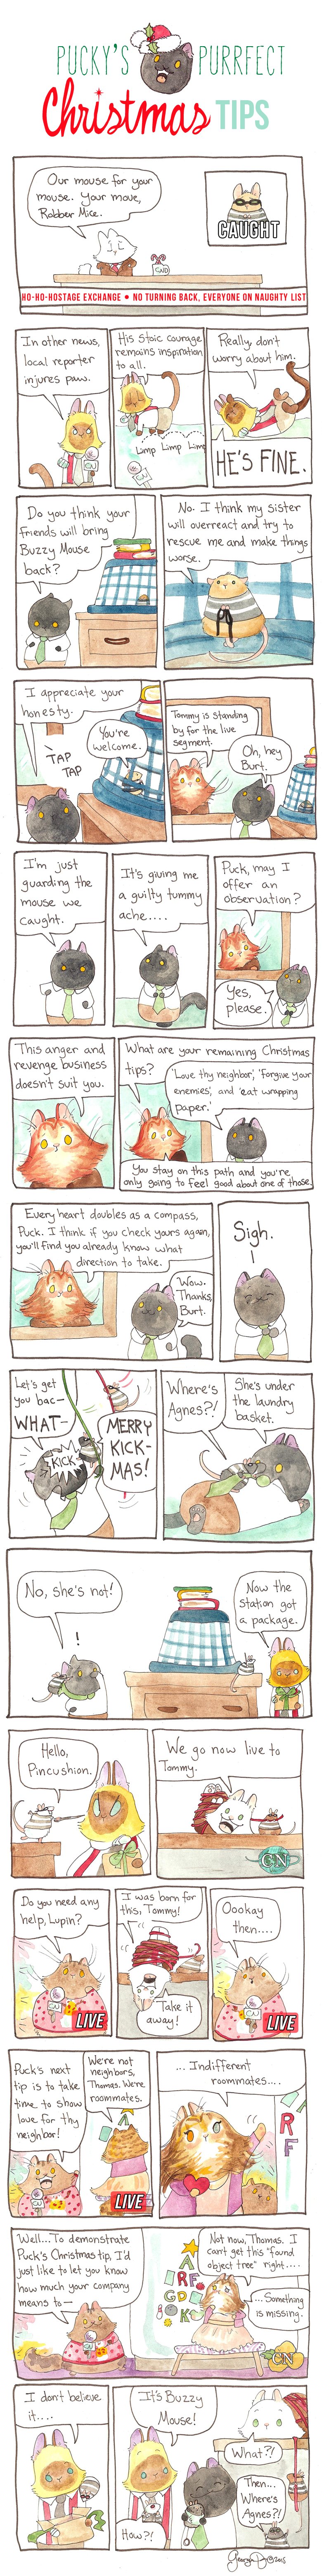 Pucky's Purrfect Christmas Tips Part Five